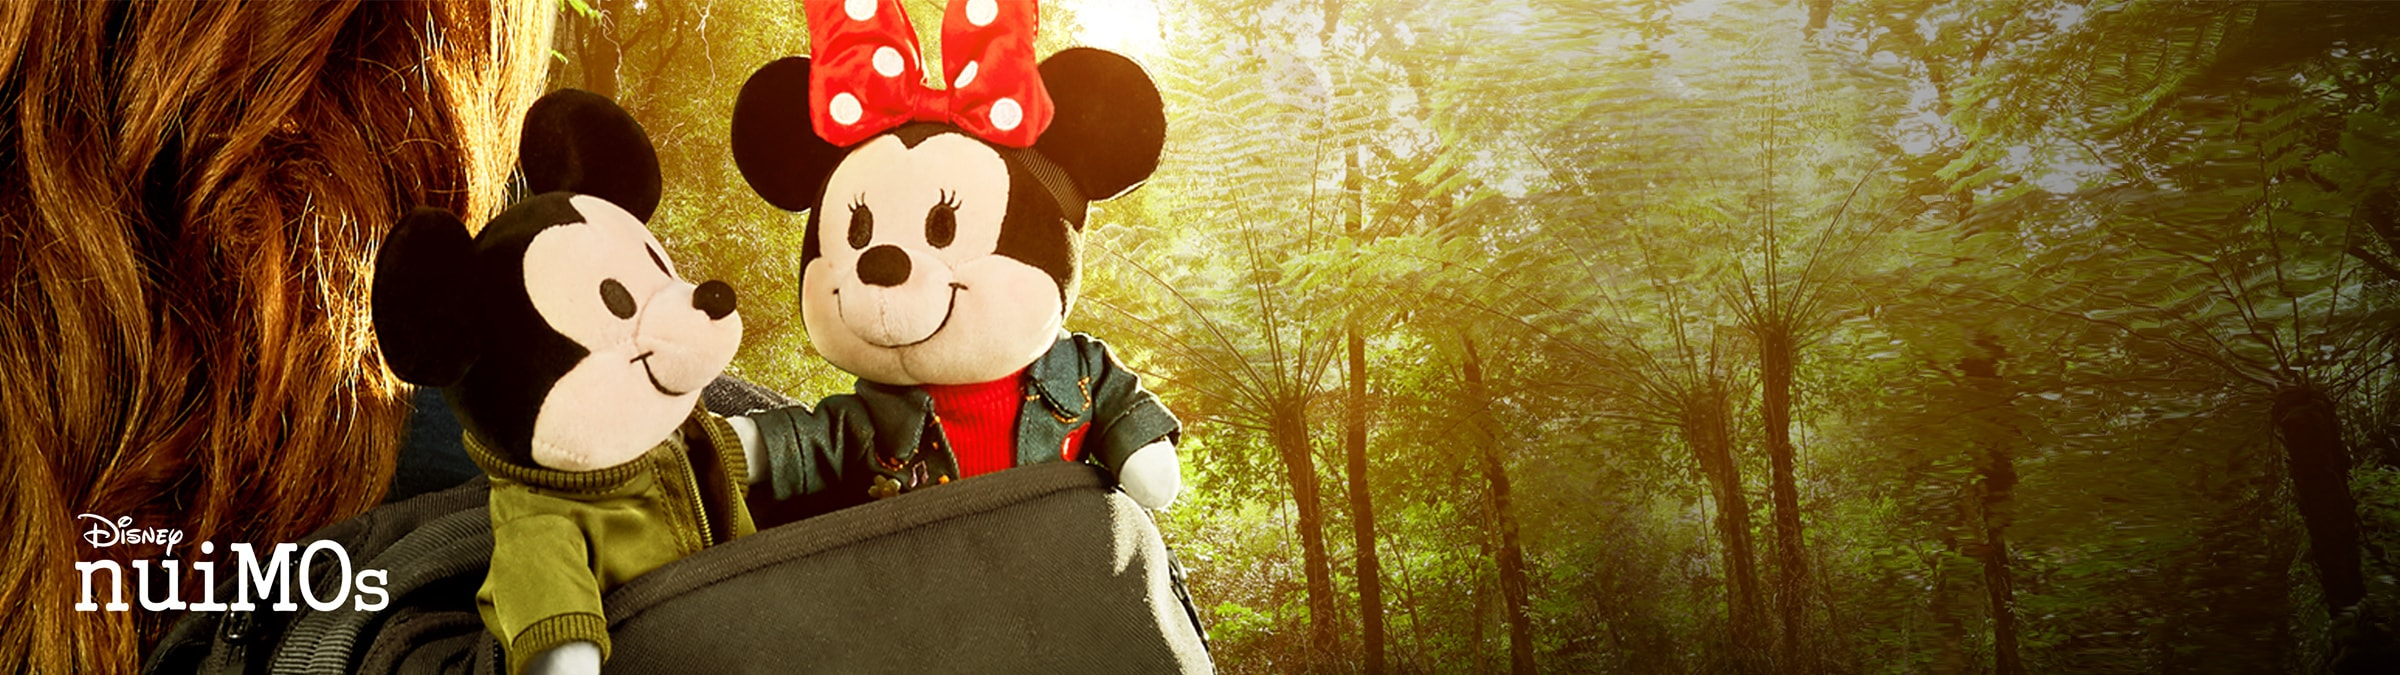 Disney nuiMOs | shopDisney | Mickey and Minnie | Forest